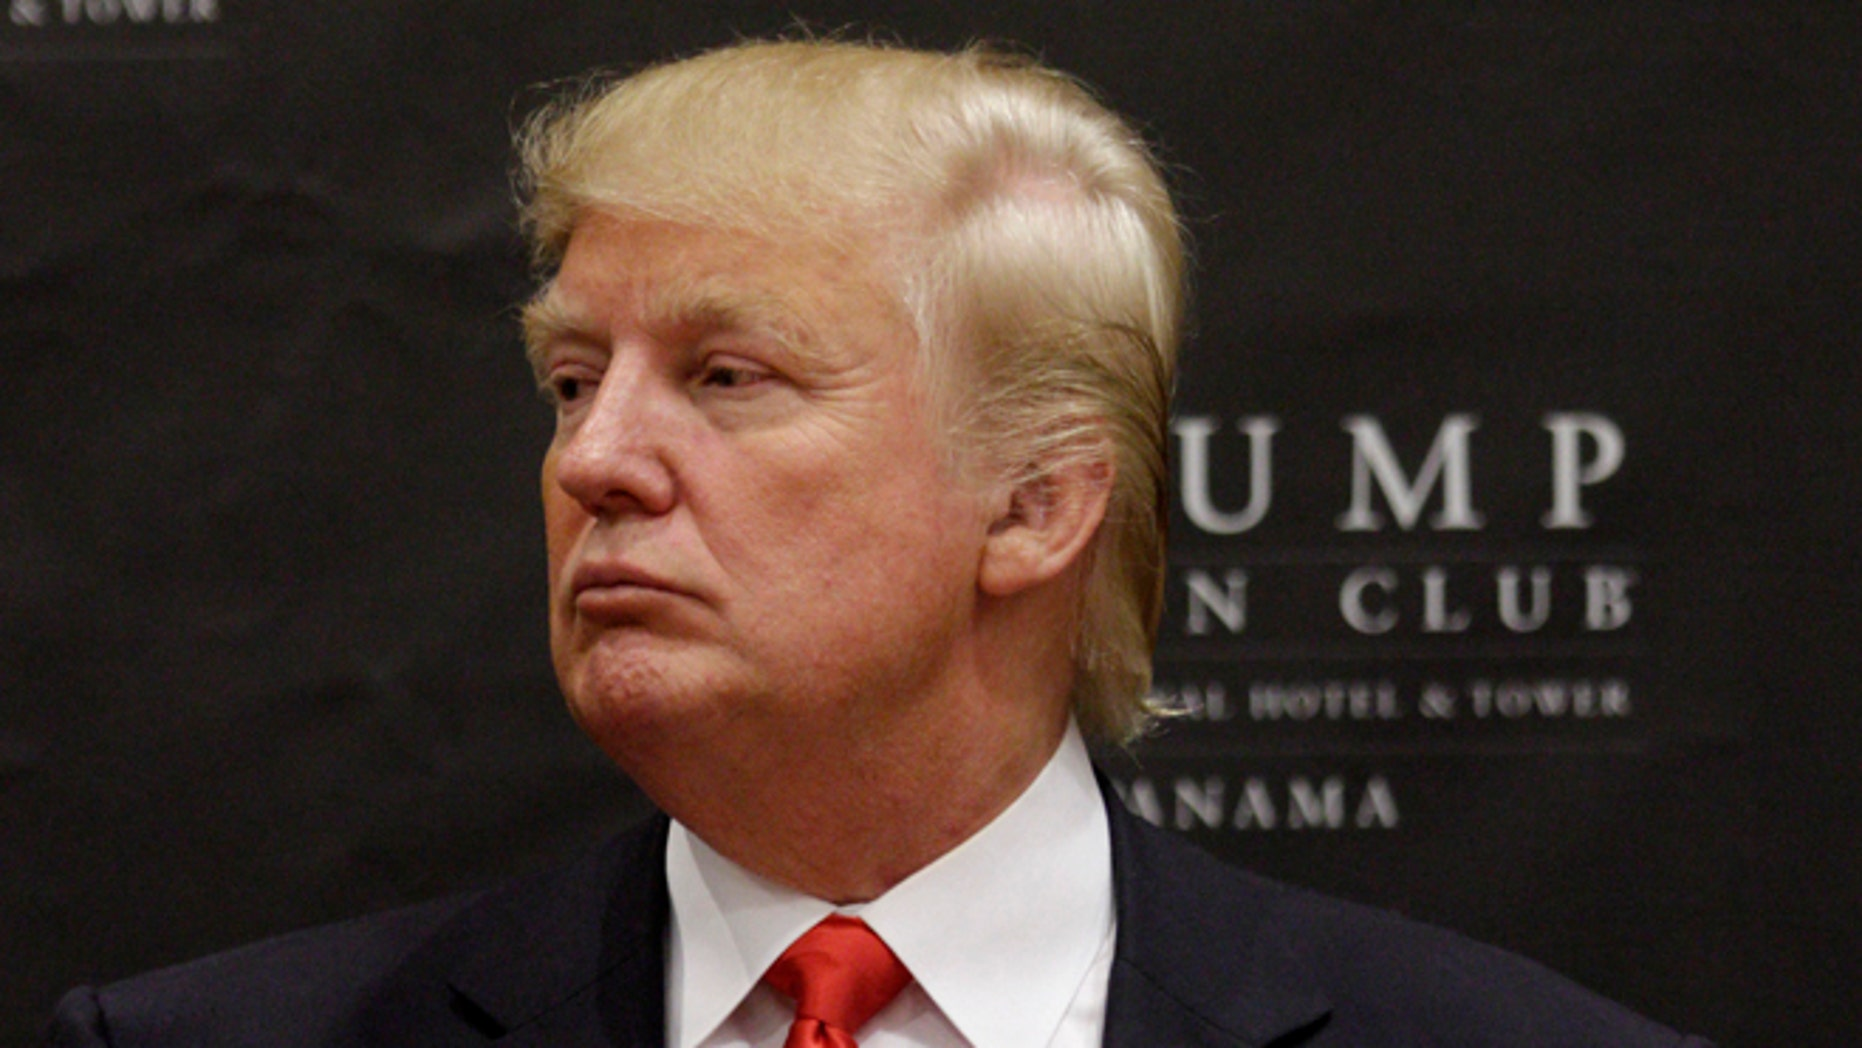 U.S. tycoon Donald Trump attends the inauguration ceremony of the Trump Ocean Club International Hotel and Tower in Panama City. (AP Photo/Arnulfo Franco, File)